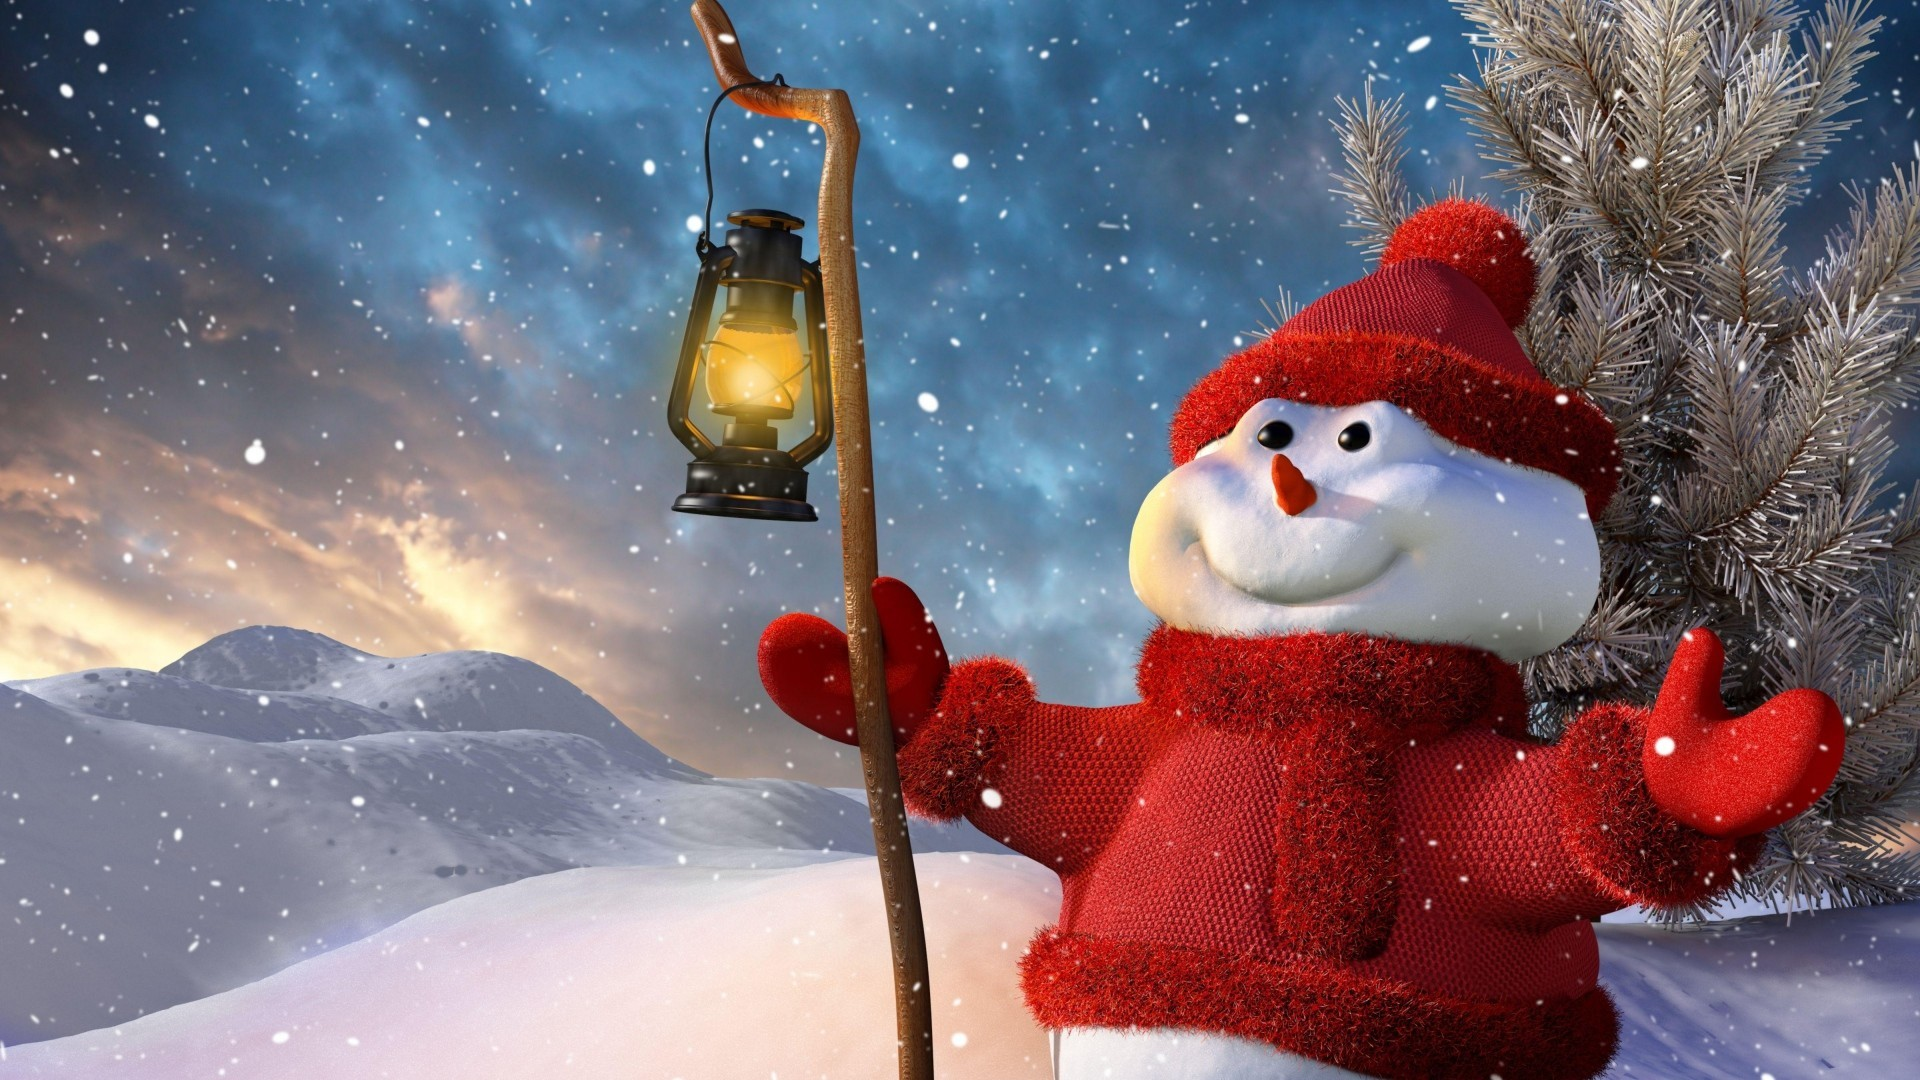 1920x1080 top-cute-christmas-desktop-backgrounds-1920×1080-high-resolution-WTG3034530